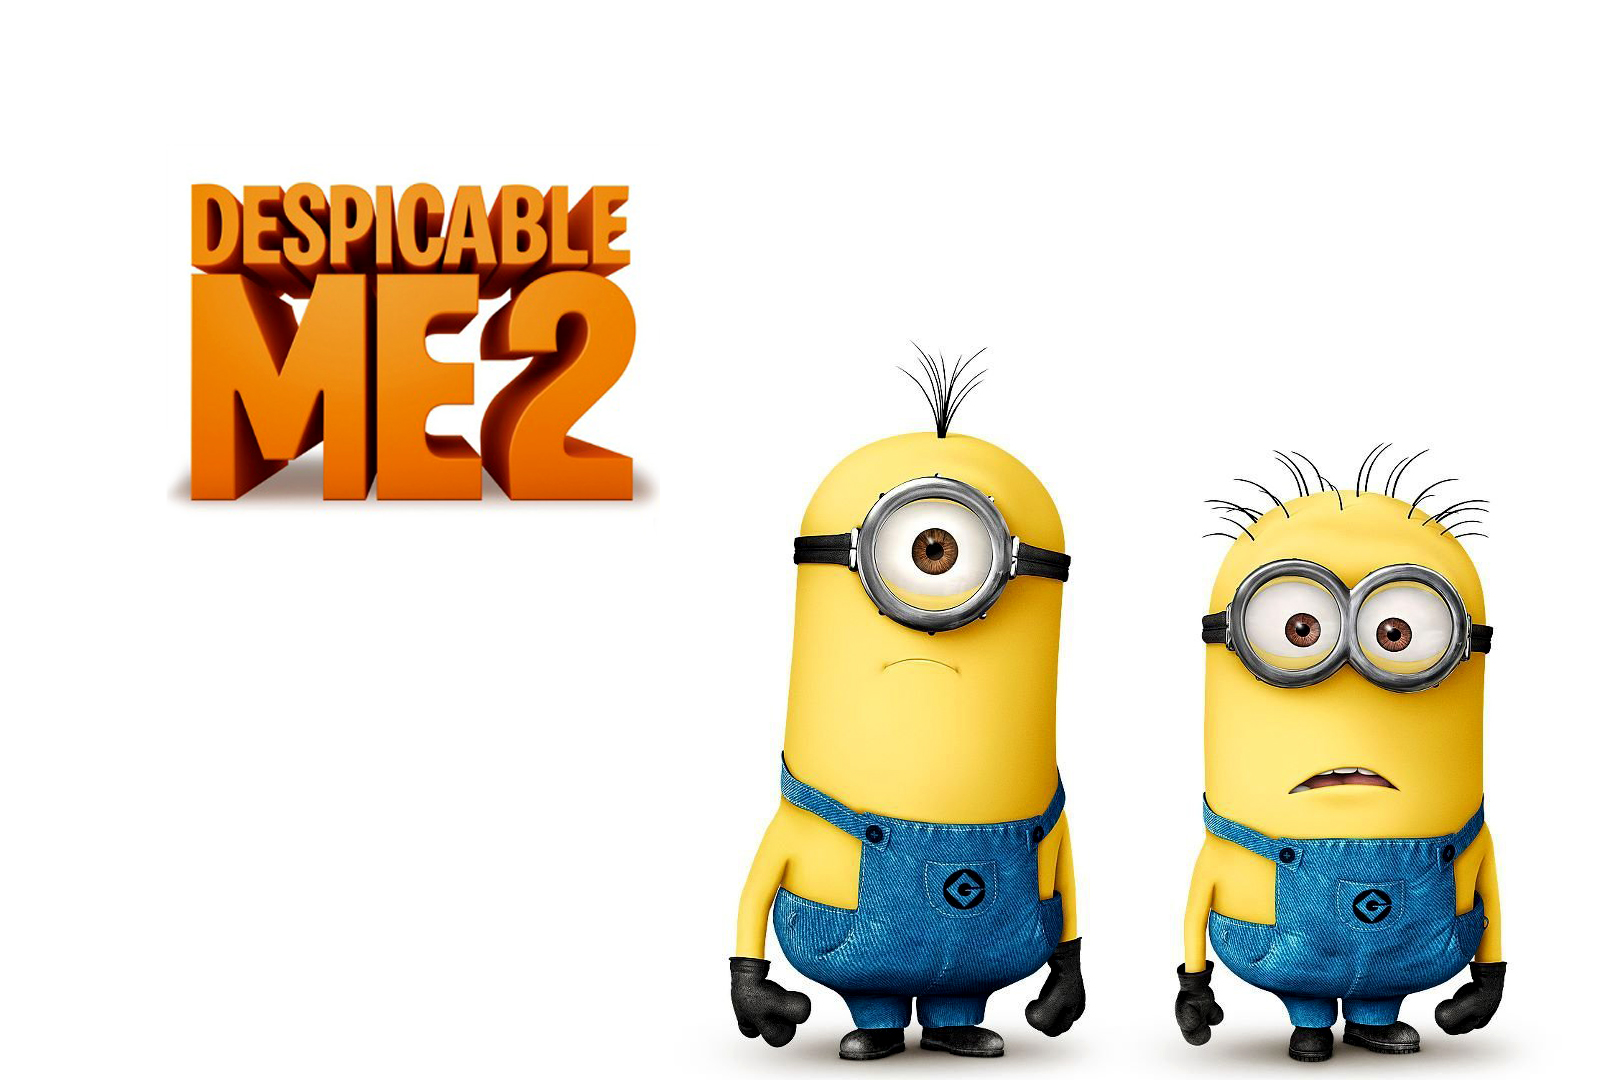 Despicable Me 2 Animation Movie 2013 HD Wallpapers